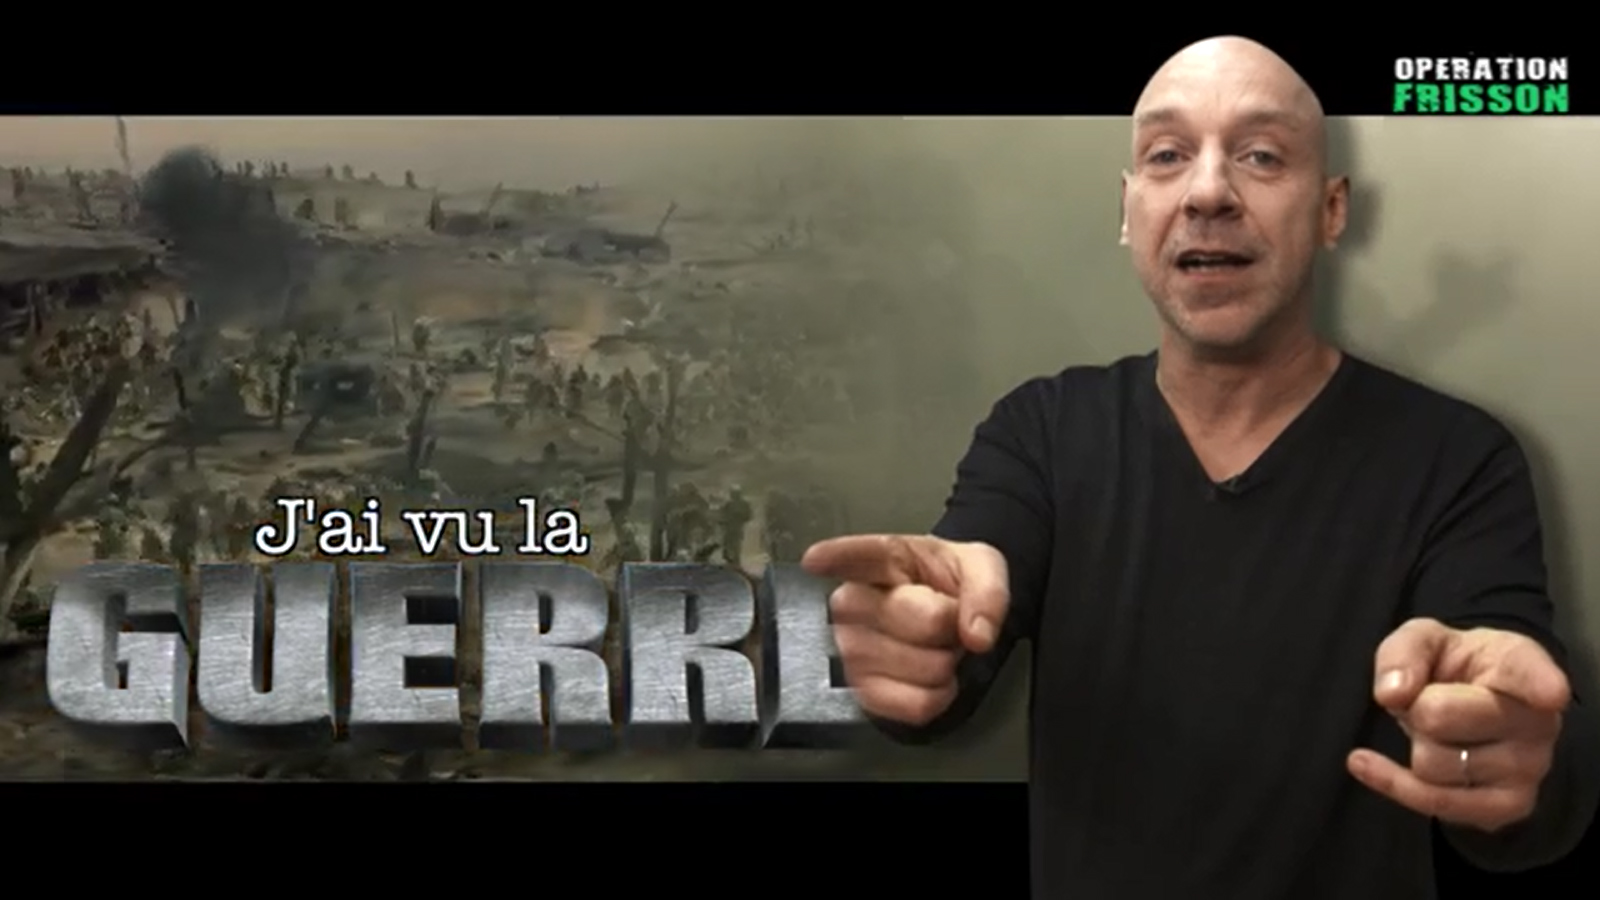 operation-frisson-jai-vu-la-guerre